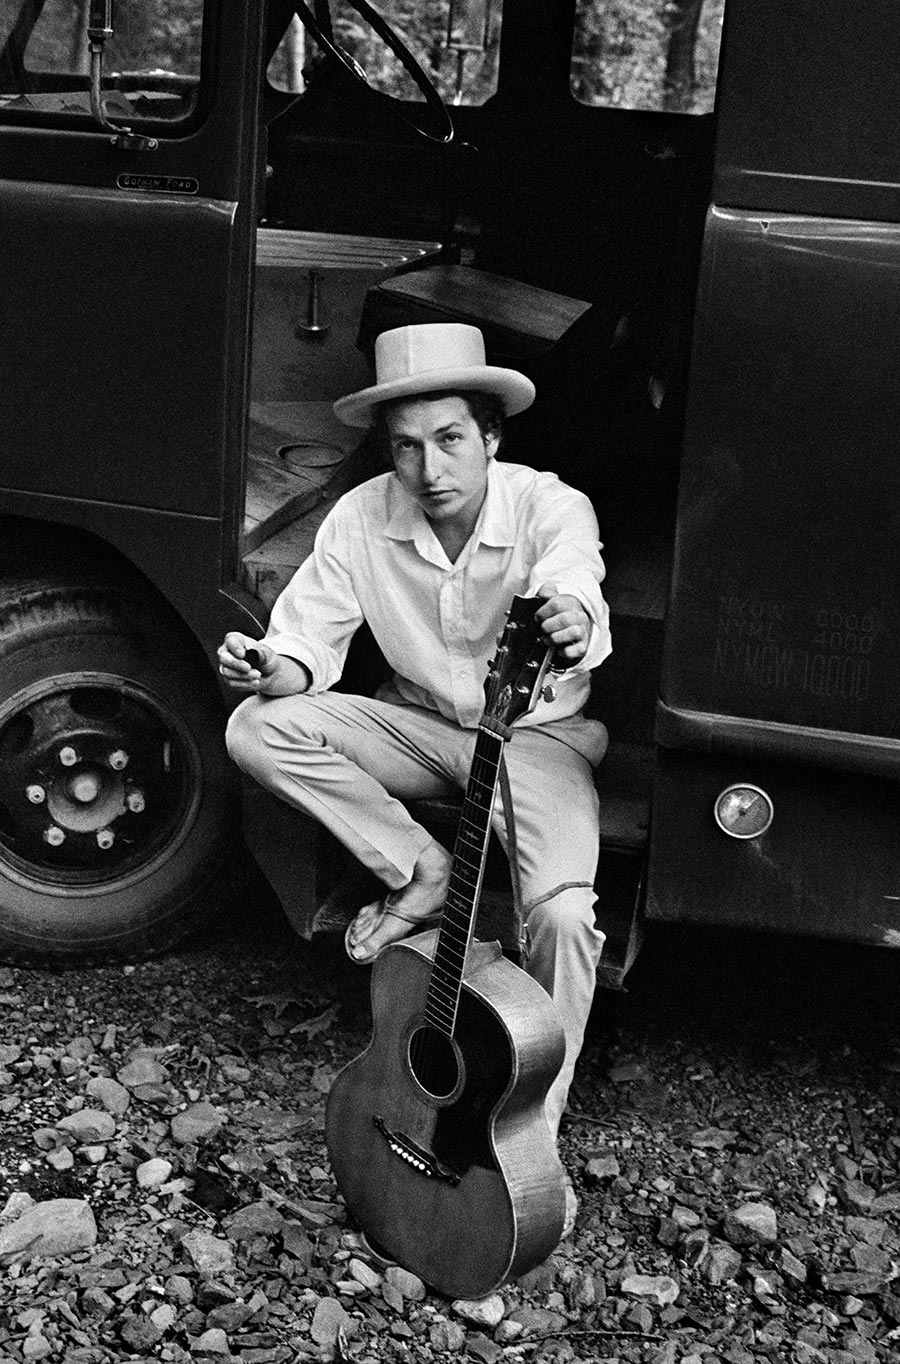 Bob Dylan on his equipment truck outside his Byrdcliffe home. Woodstock, New York. 1968.